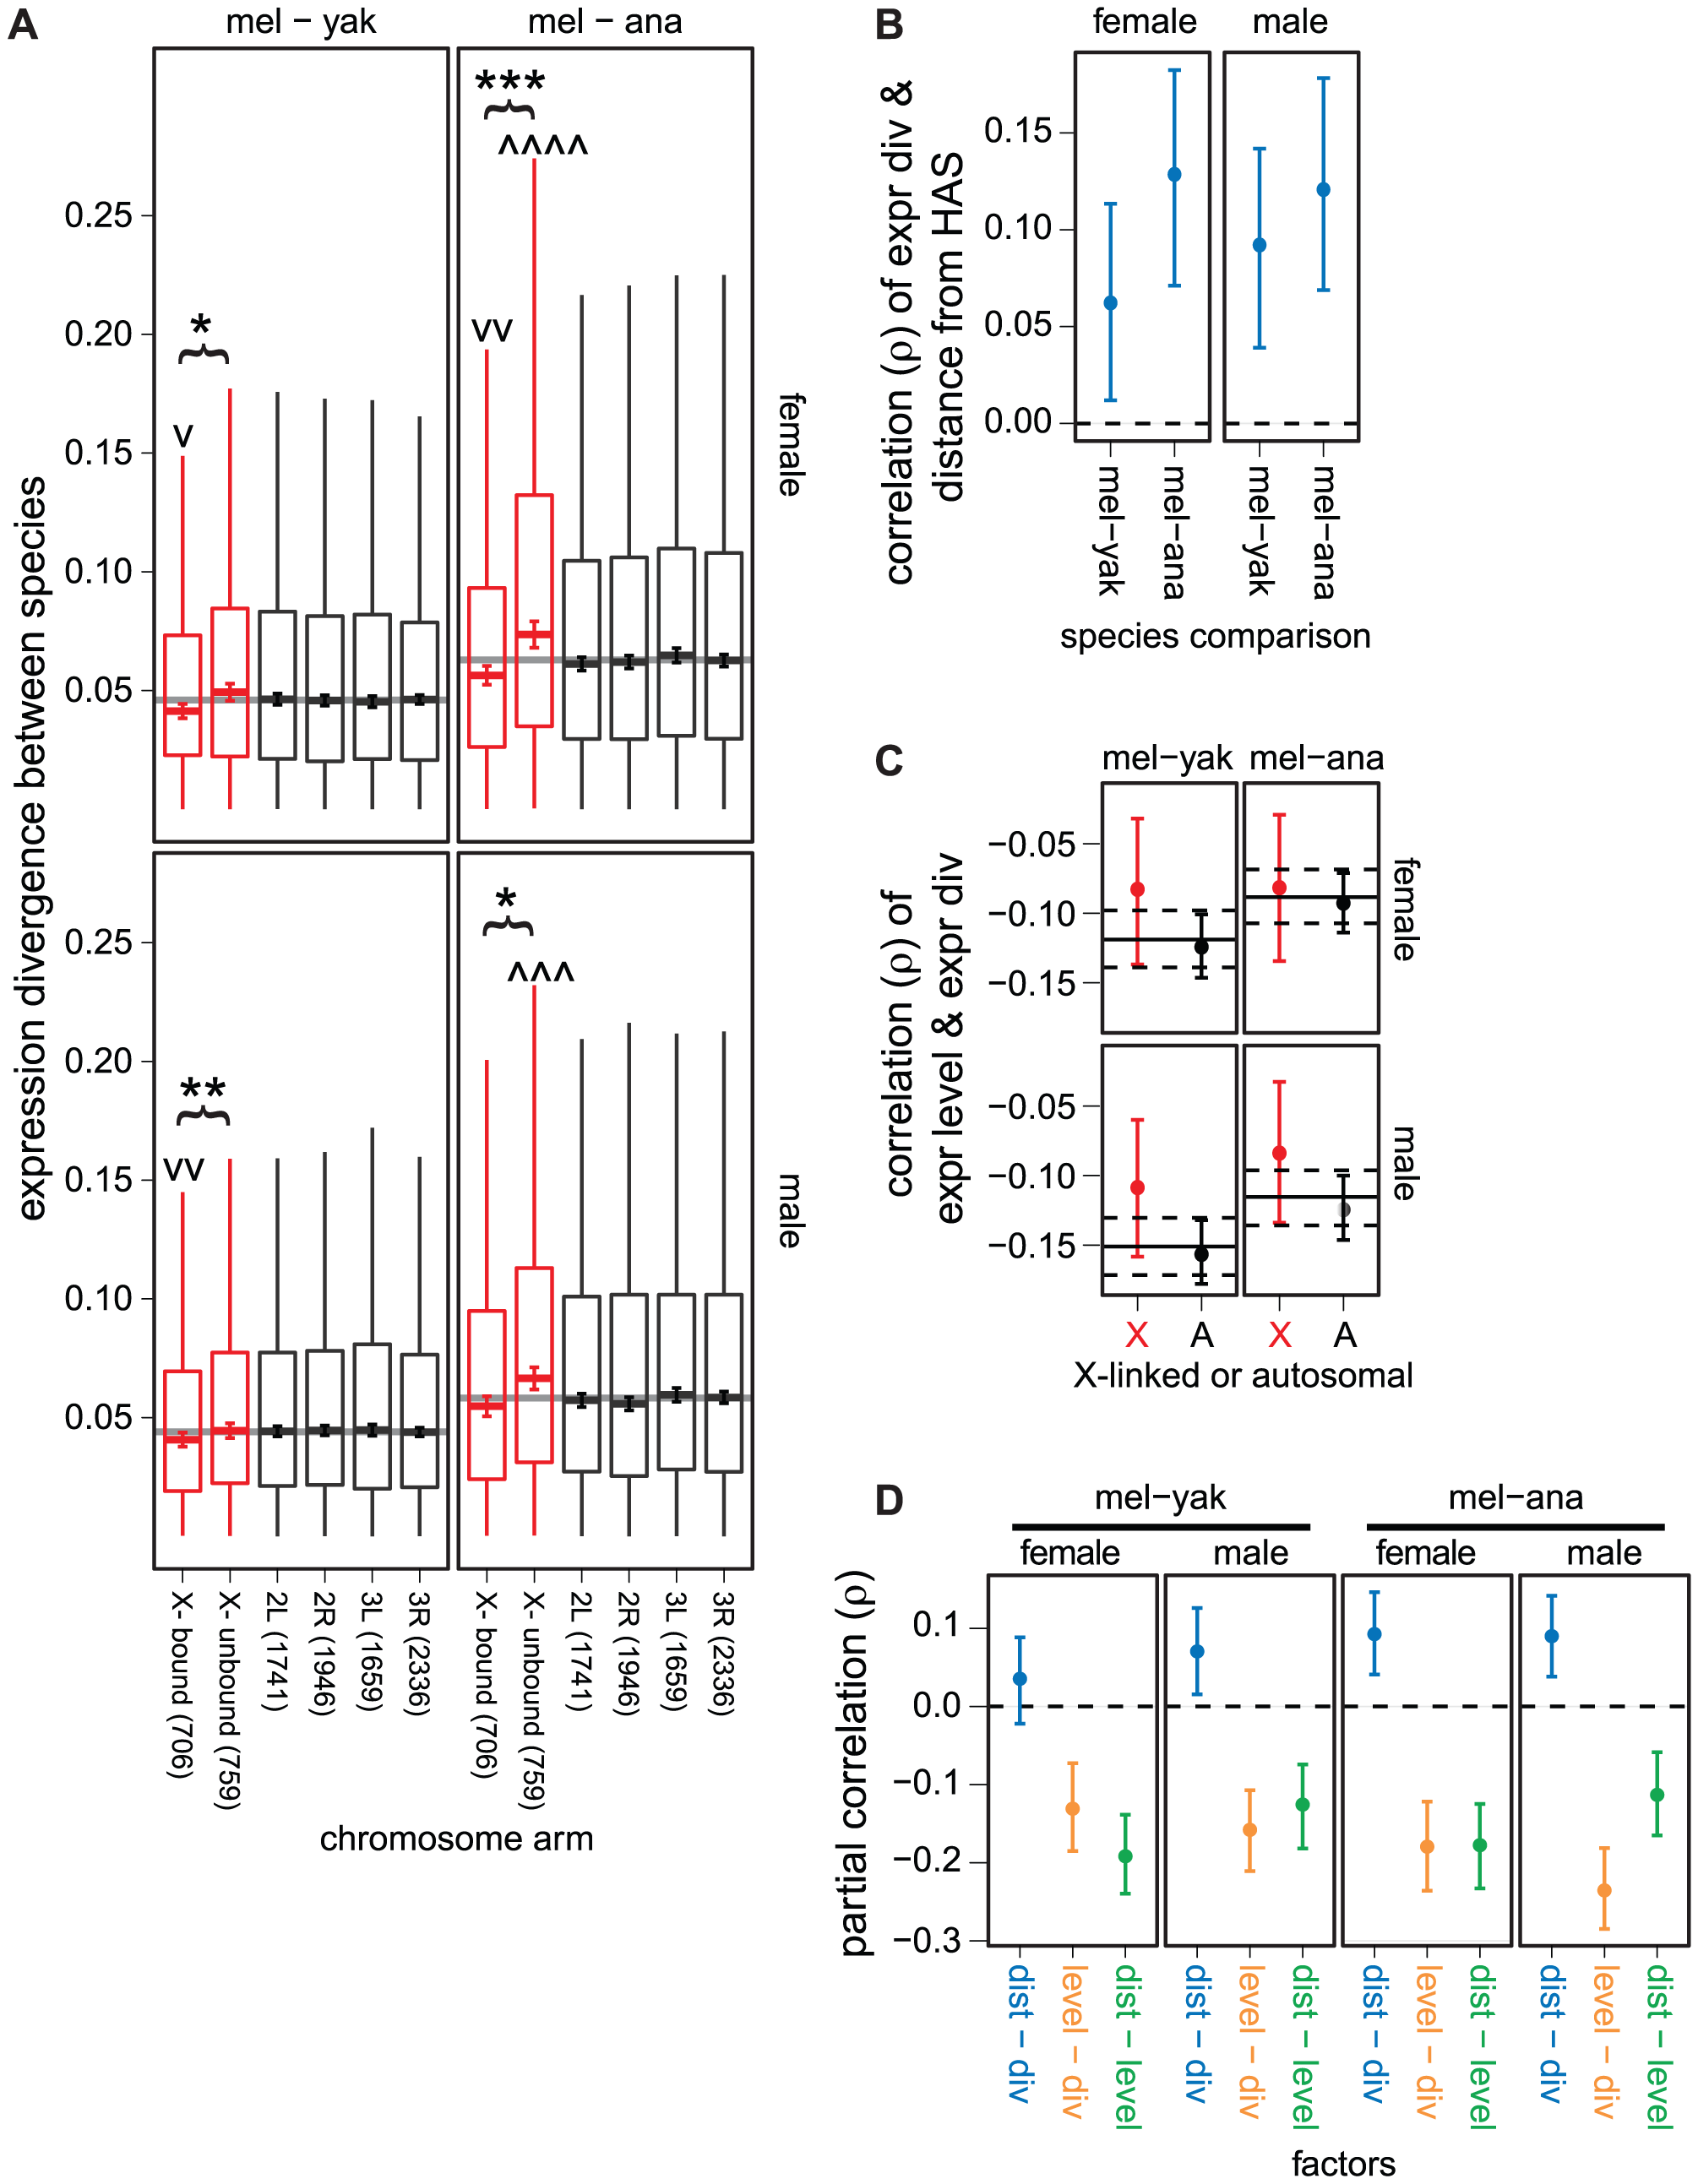 Faster expression evolution of X-linked genes not directly regulated by the DCC.